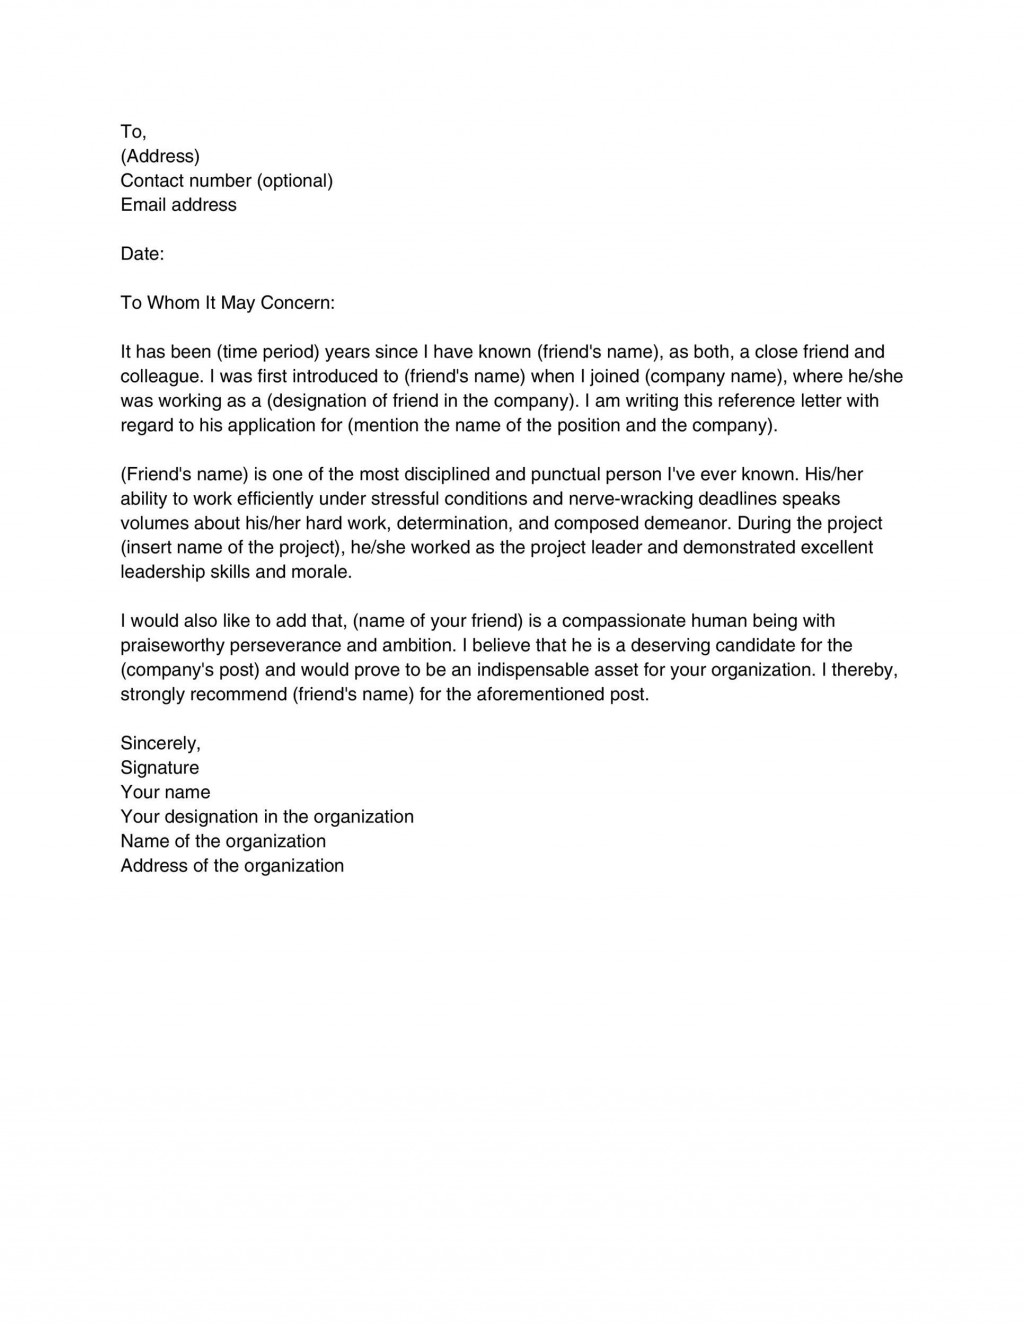 008 Impressive Free Reference Letter Template Word Sample  Personal For EmploymentLarge